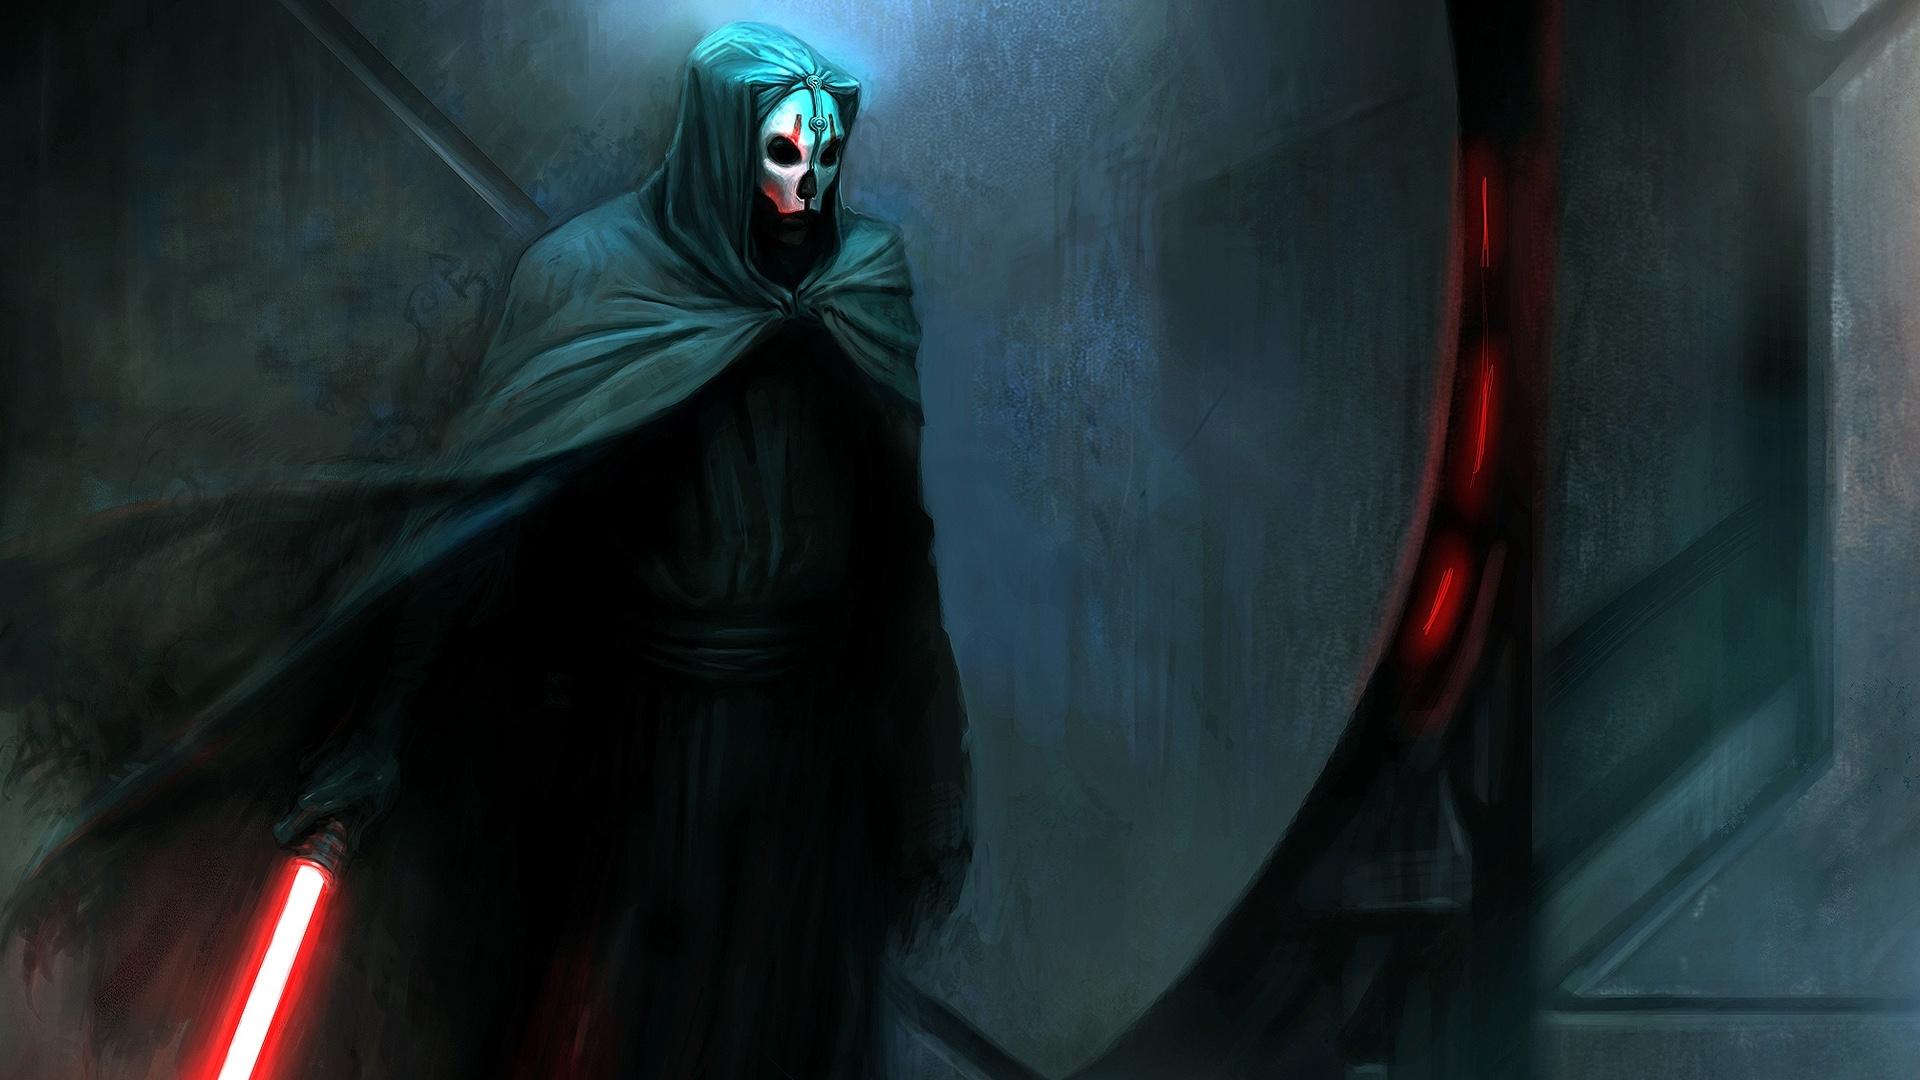 star wars: knights of the old republic ii full hd wallpaper and